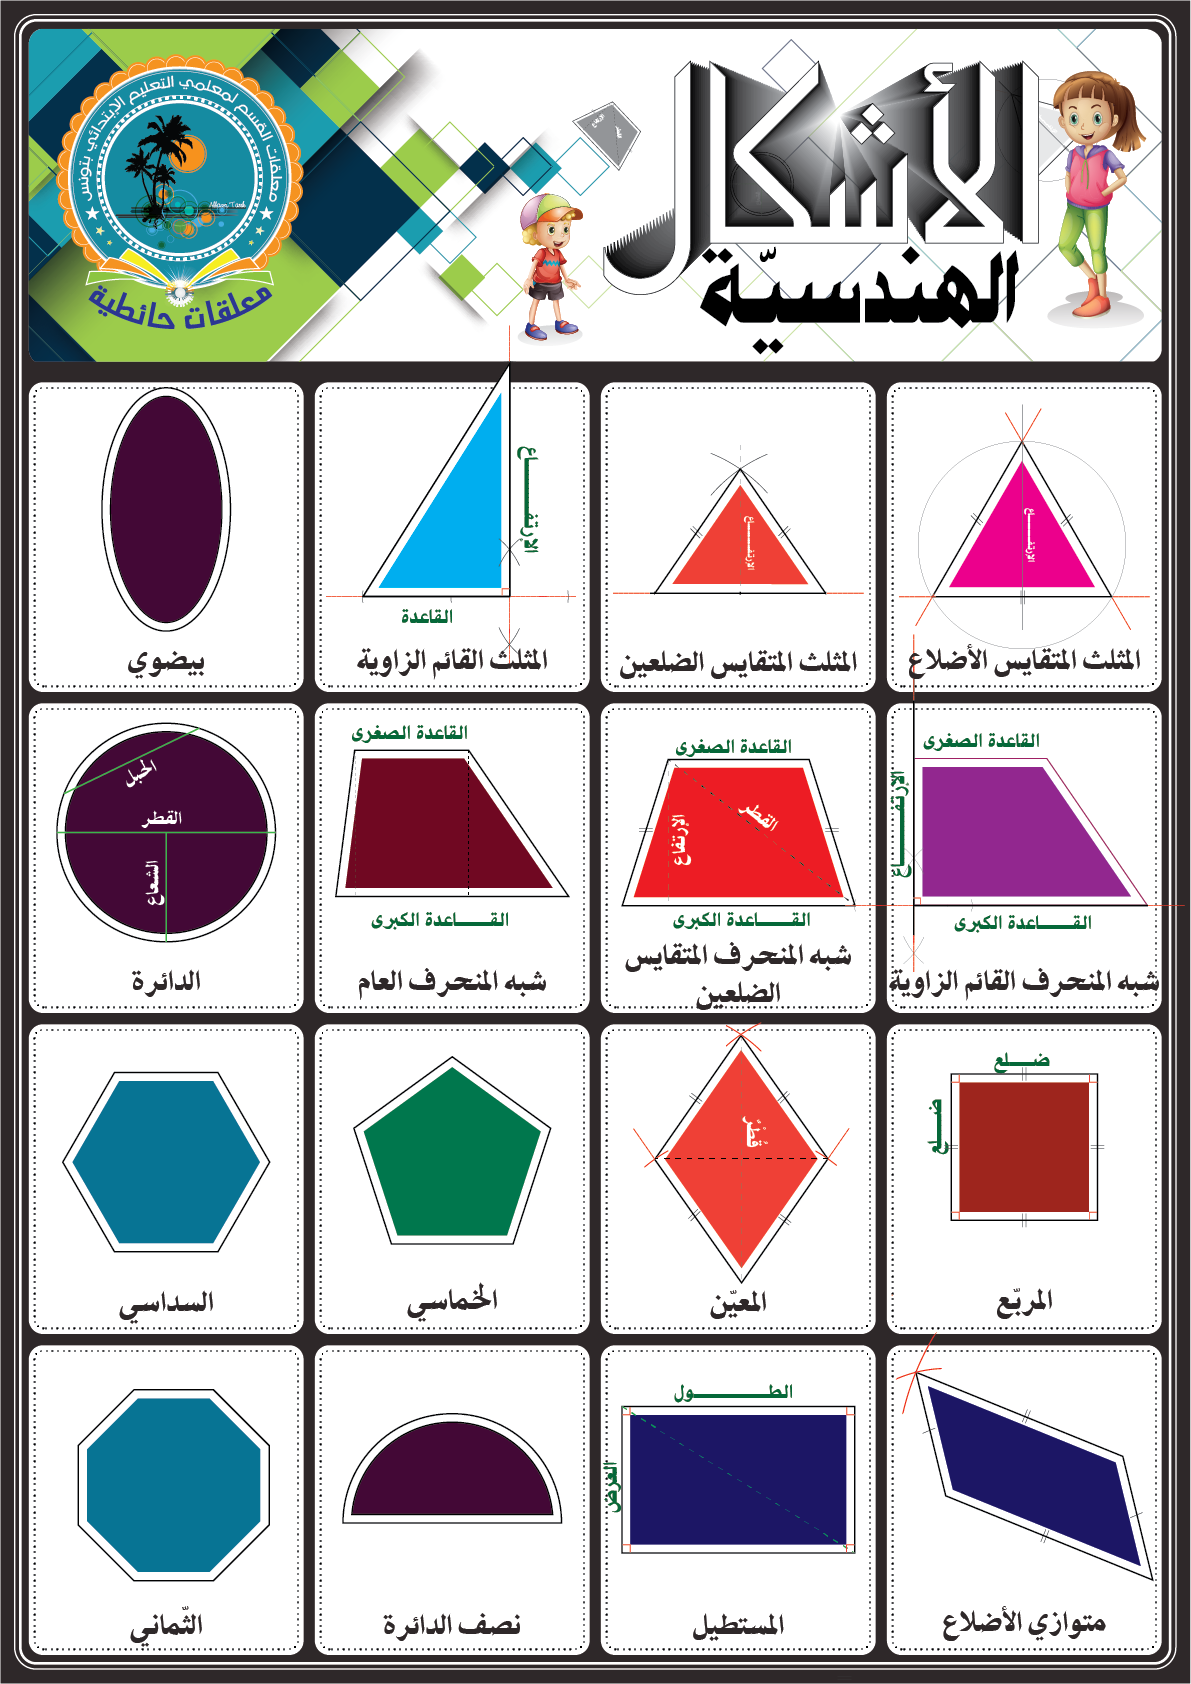 الأشكال الهندسية Learning Arabic Arabic Kids Learn Arabic Language